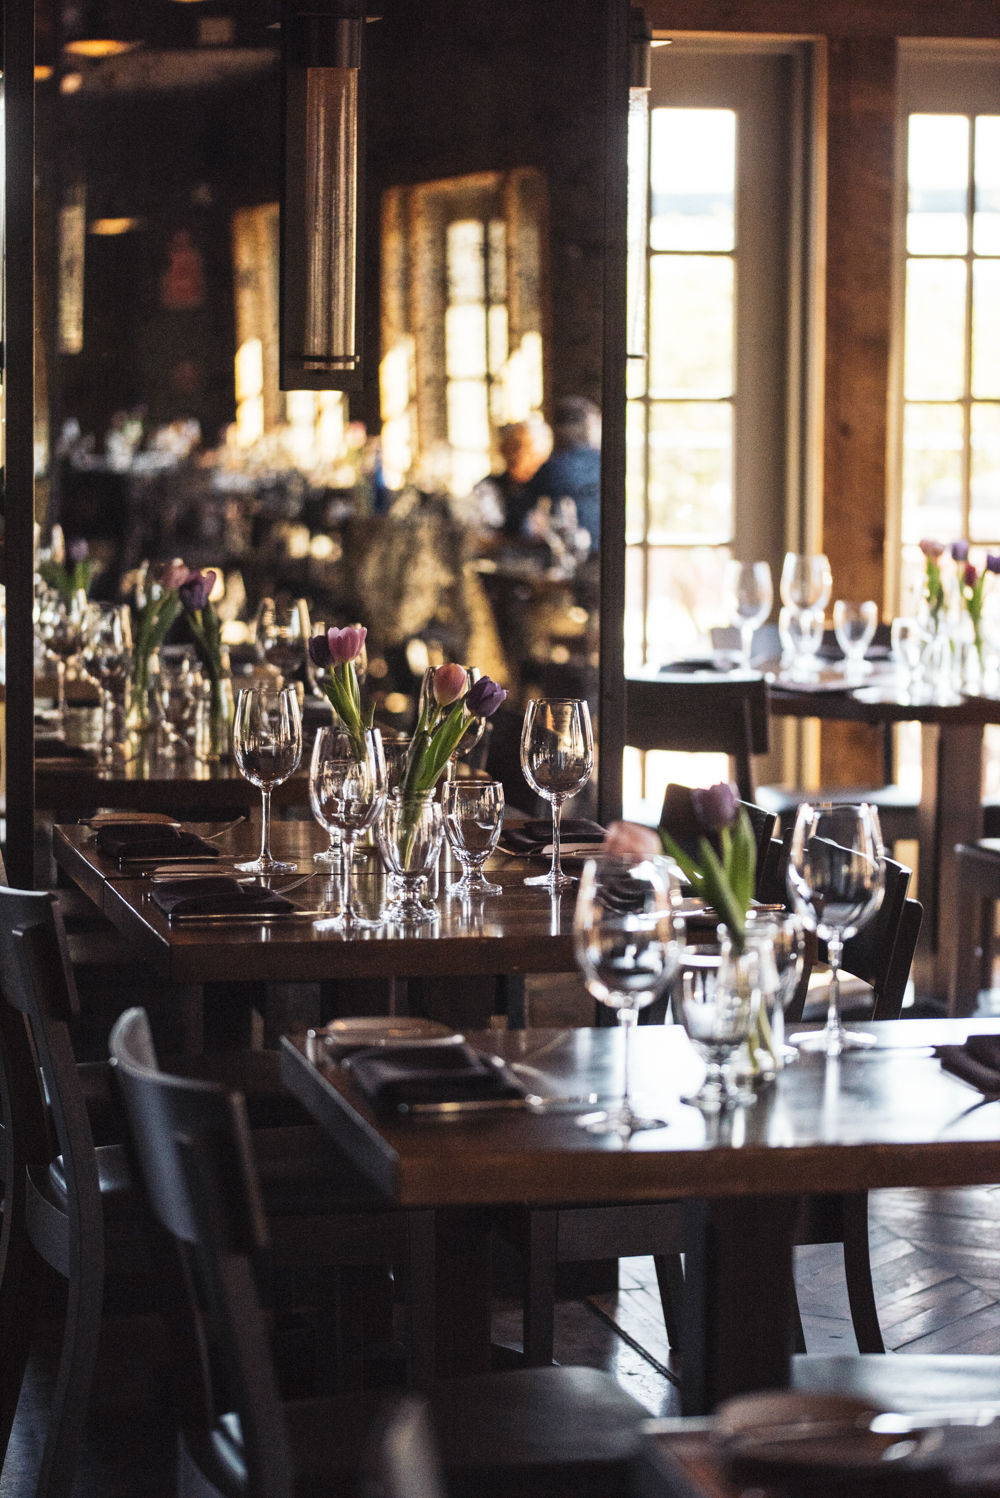 Our dining room, filled with light, can host your next private event.